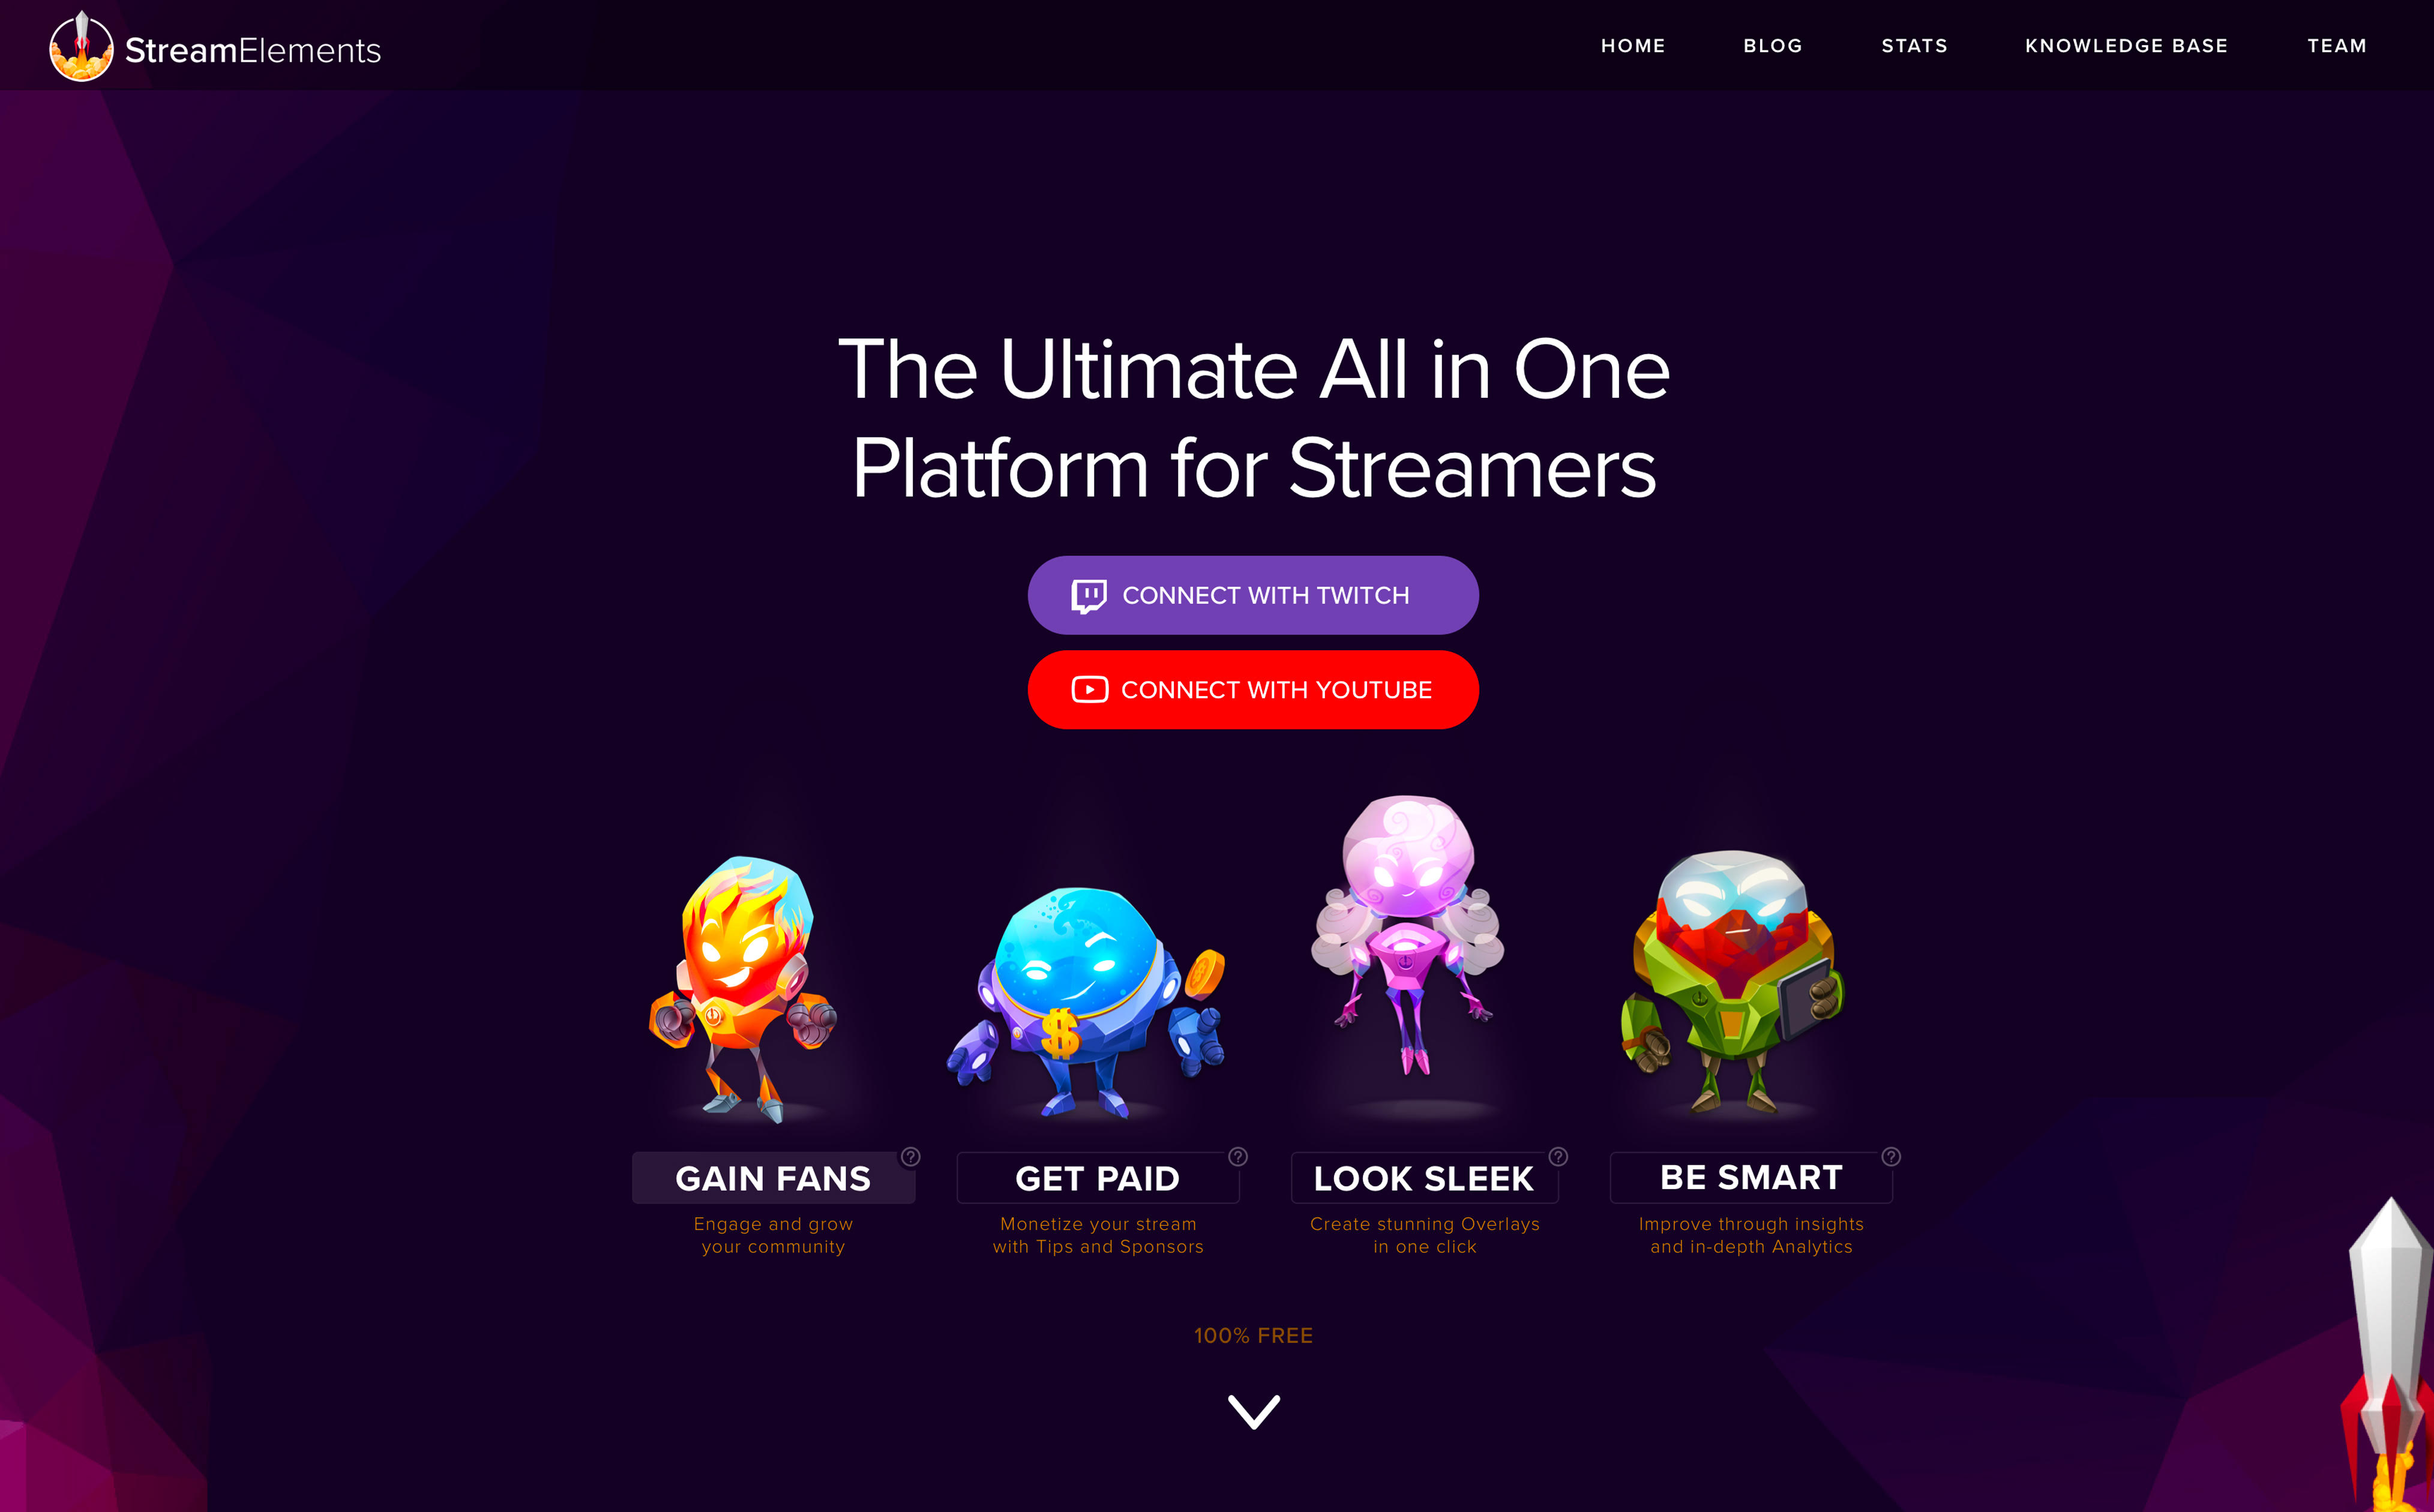 SE Pay is a new Adyen-powered PayPal competitor for Twitch